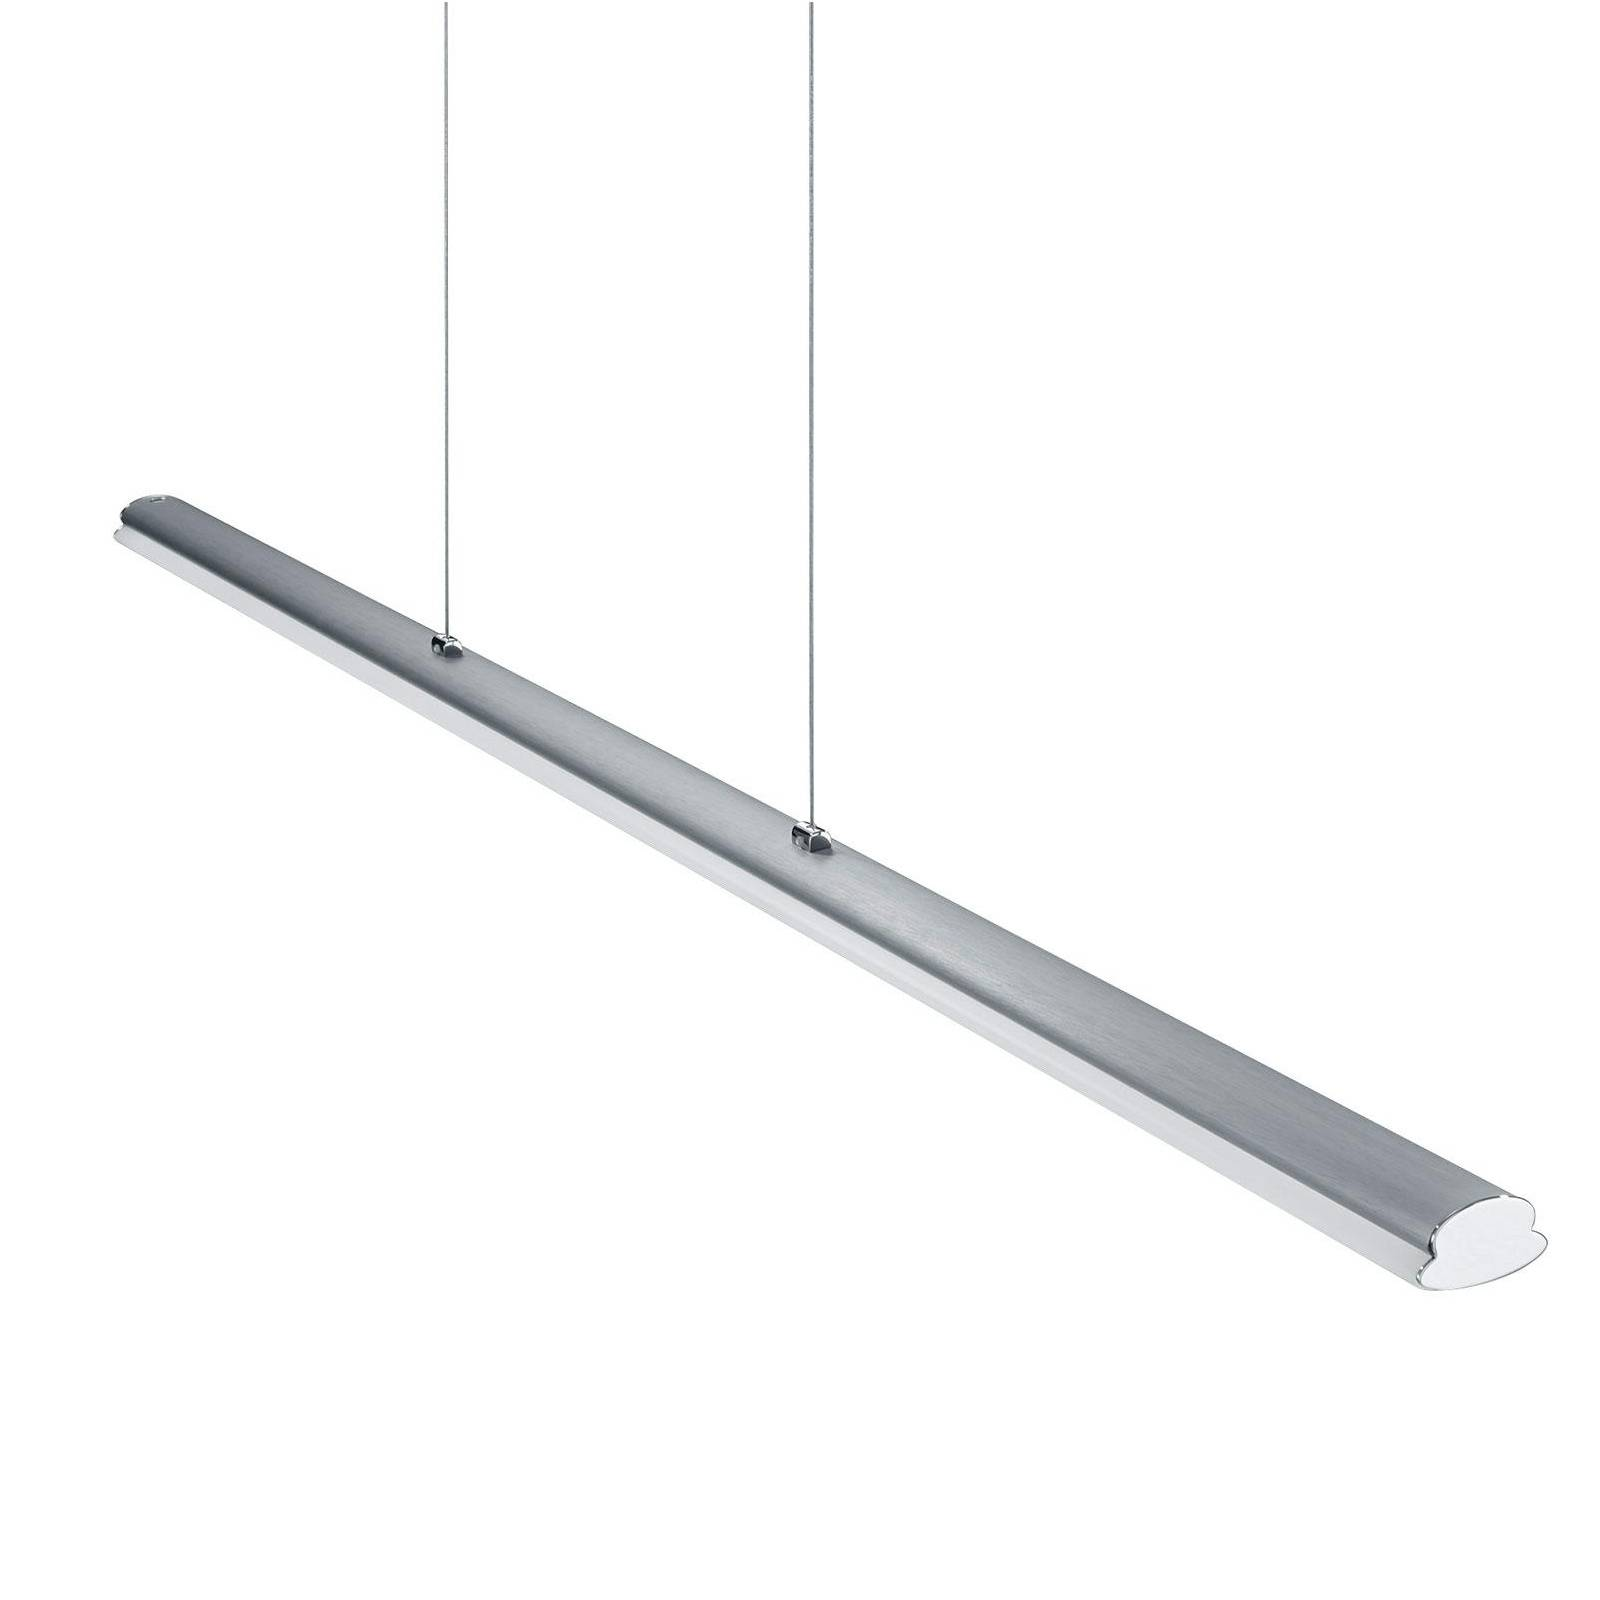 Helestra Suspension LED Venta - nickel/anodisé/PxHxP 116,5x3x5cm/2800K/1910lm